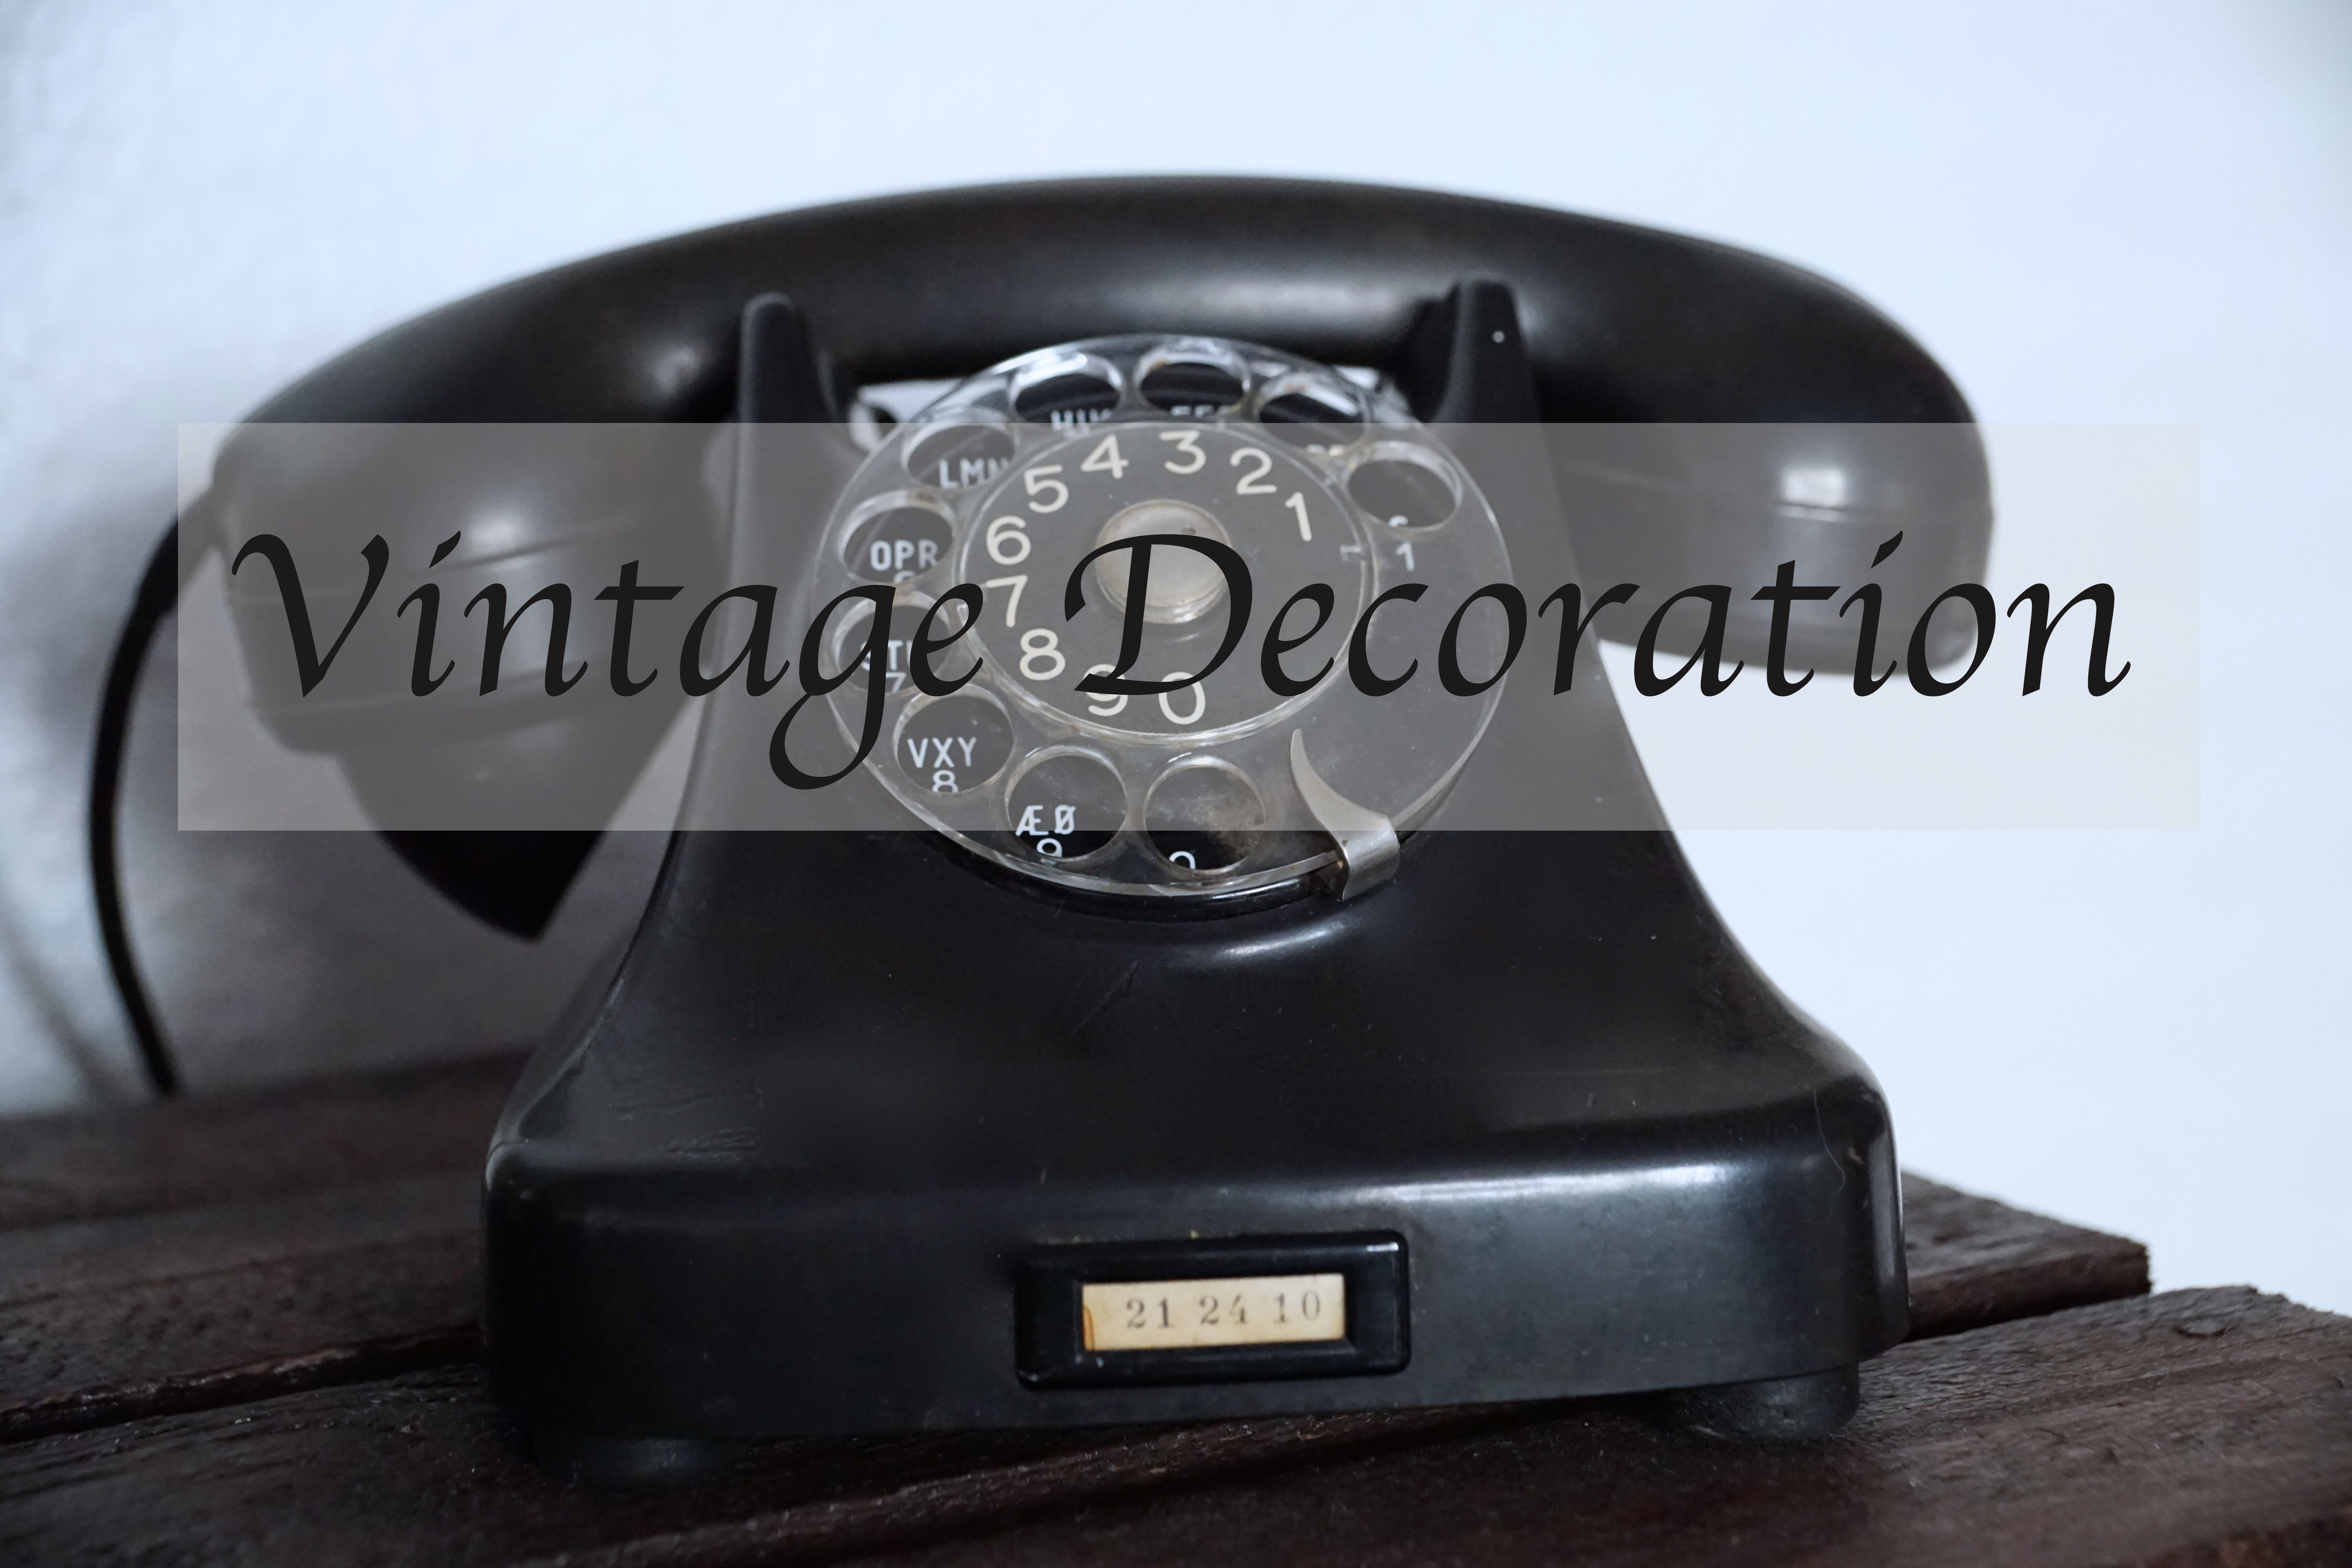 Vintage Decoration